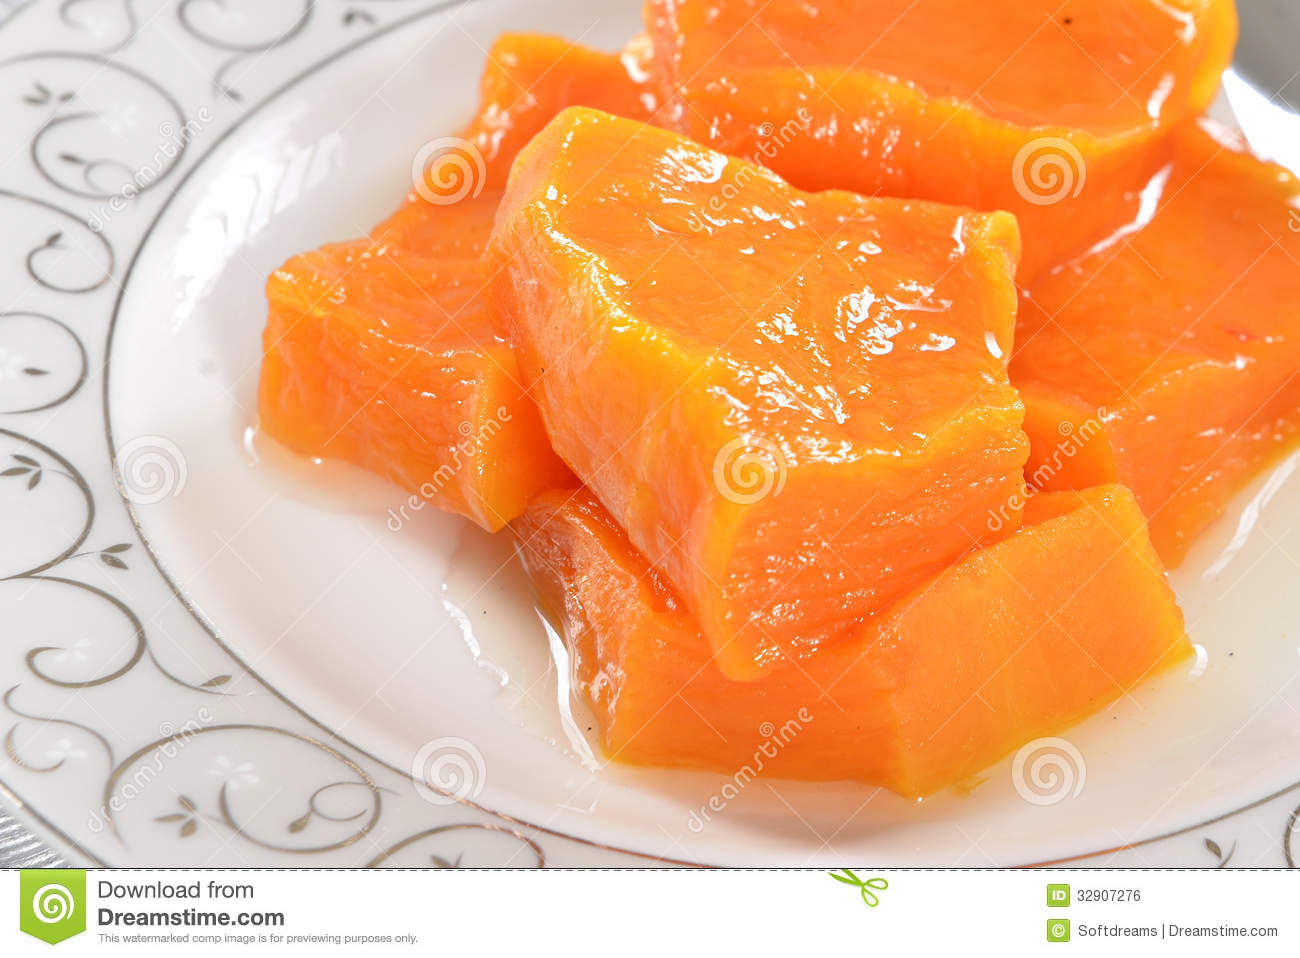 Roasted Pumpkin Royalty Free Stock Image - Image: 32907276